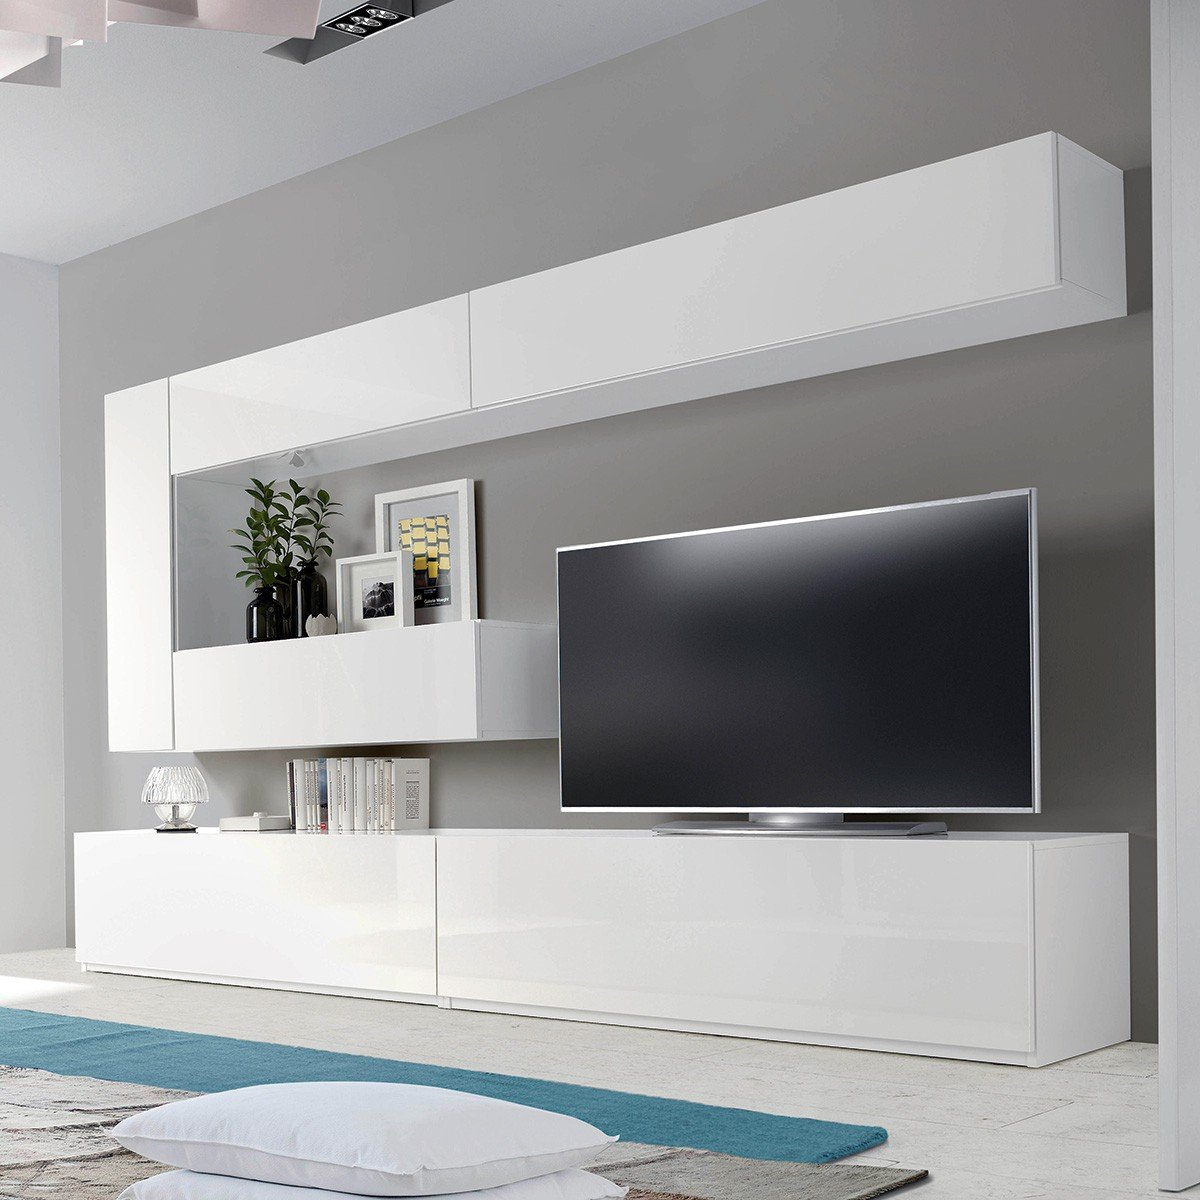 Meuble Tv Atylia - Meuble Tv Mural Design Dublin Atylia Couleur Blanc Amazon Fr [mjhdah]http://foggsofventnor.com/wp-content/uploads/2018/01/stunning-meuble-tv-design-taupe-neva-atylia-d-coration-cour-arri-re-fresh-at-awesome-rubis-blanc-artzein-1.jpg